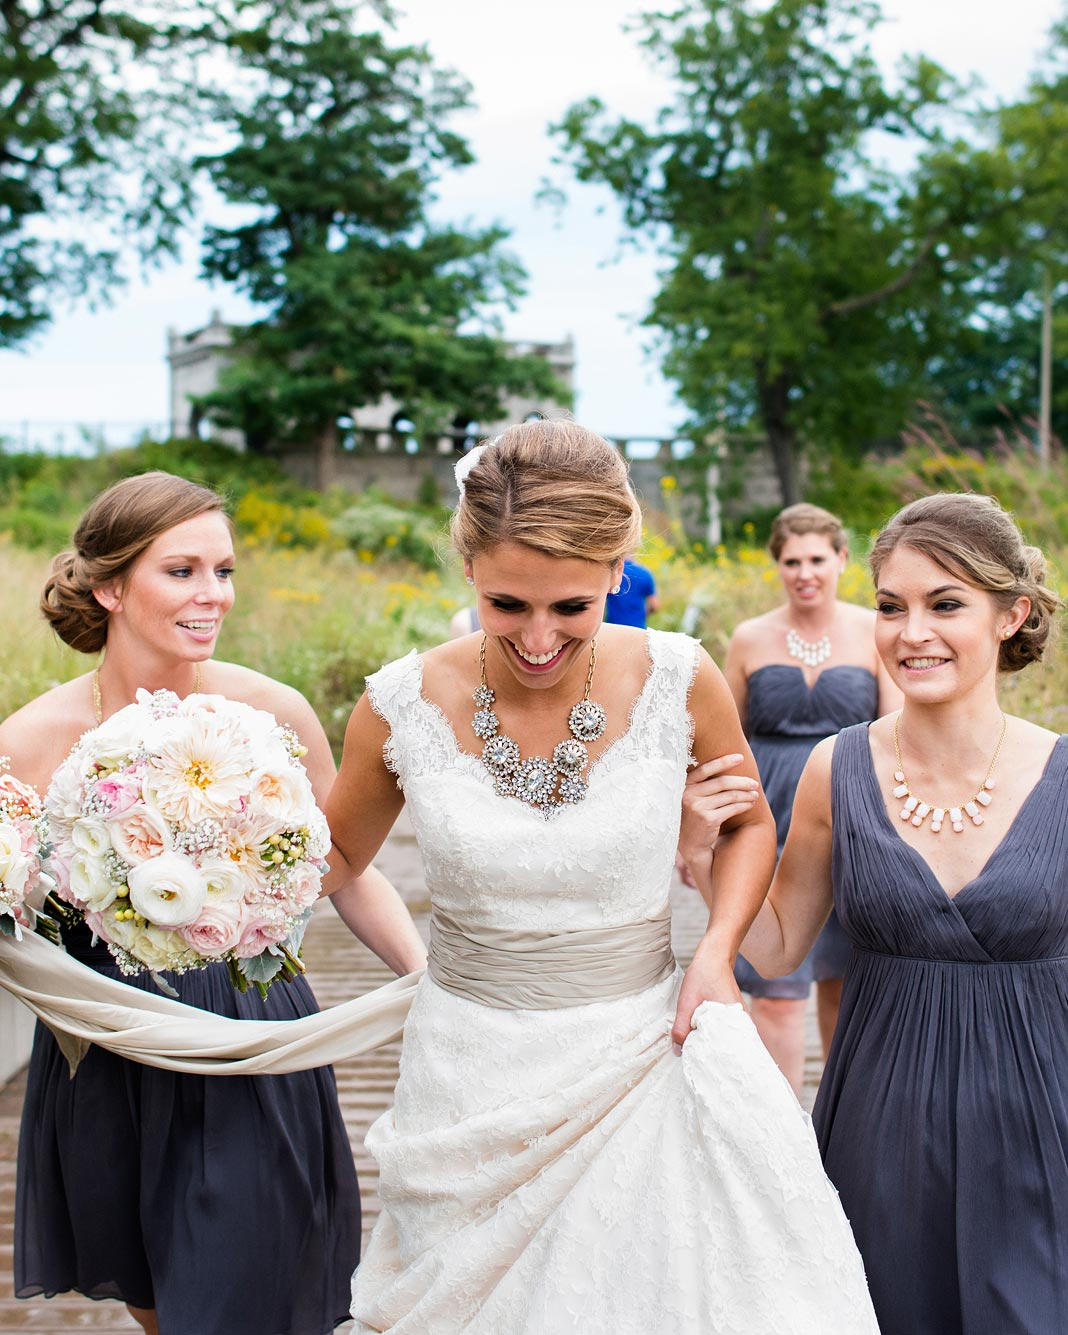 bridal-party-candids-4-0416.jpg